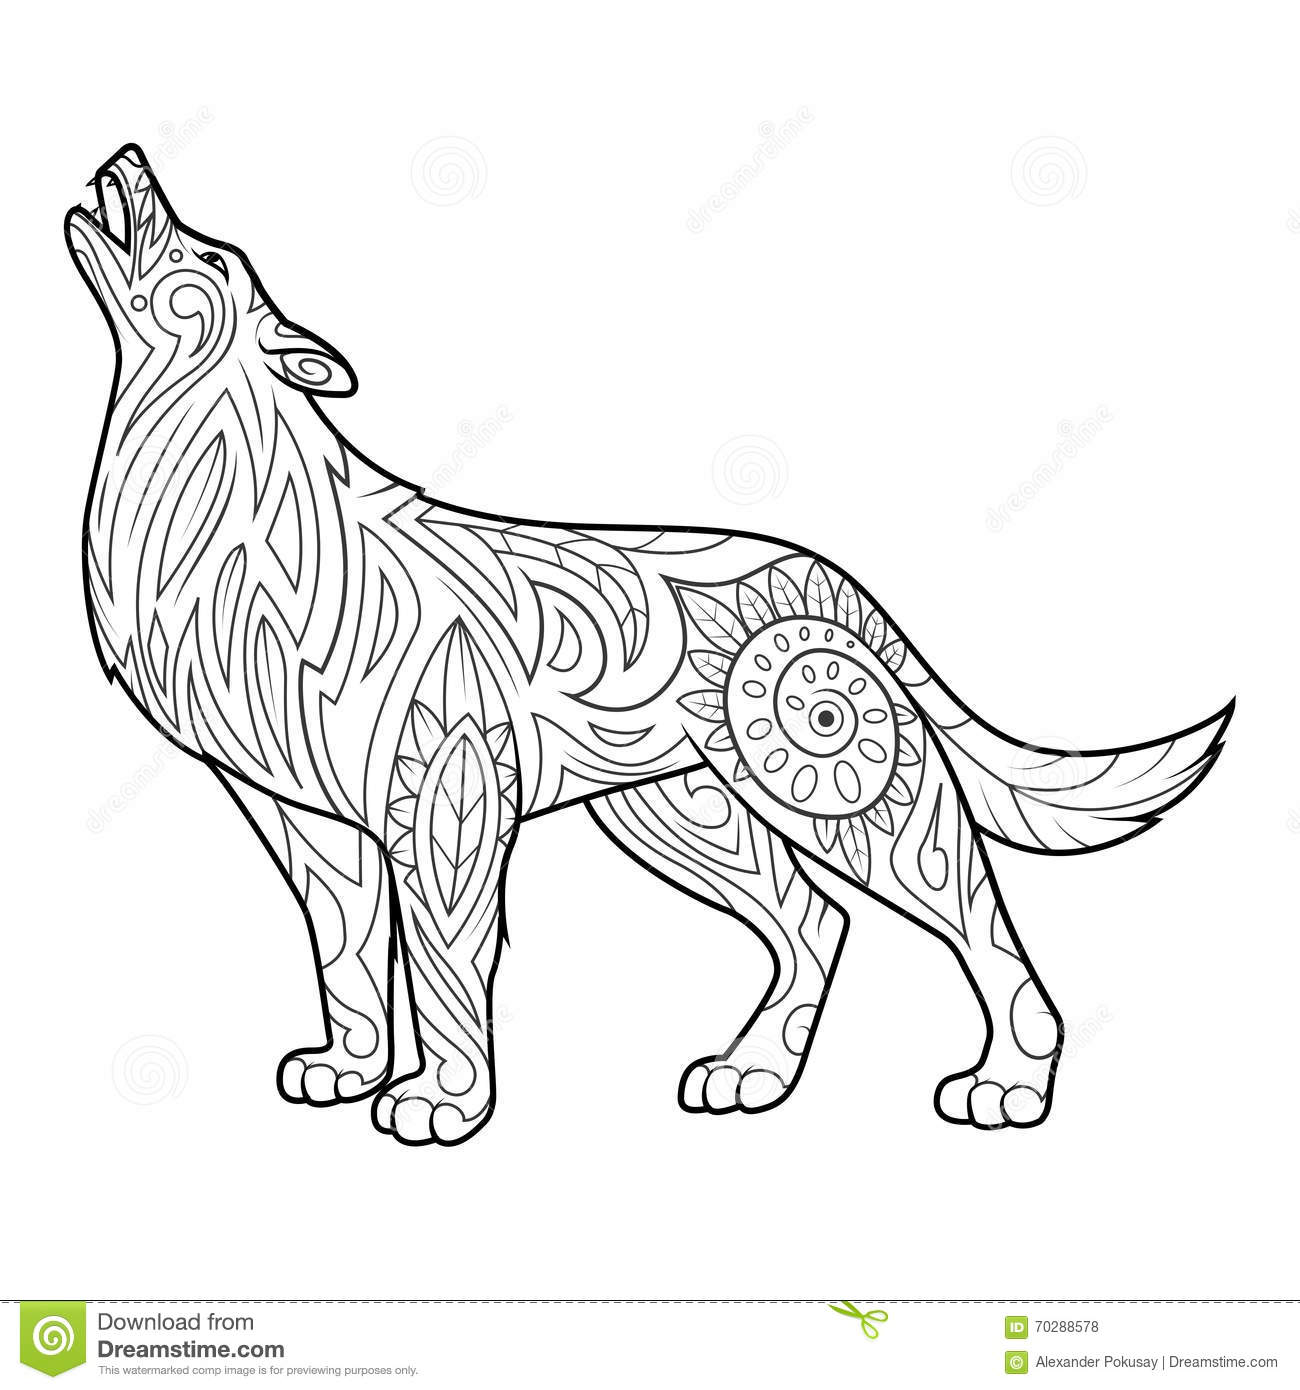 Coloring pages for adults wolf - Colouring For Adults Wolf Wolf Coloring Book For Adults Vector